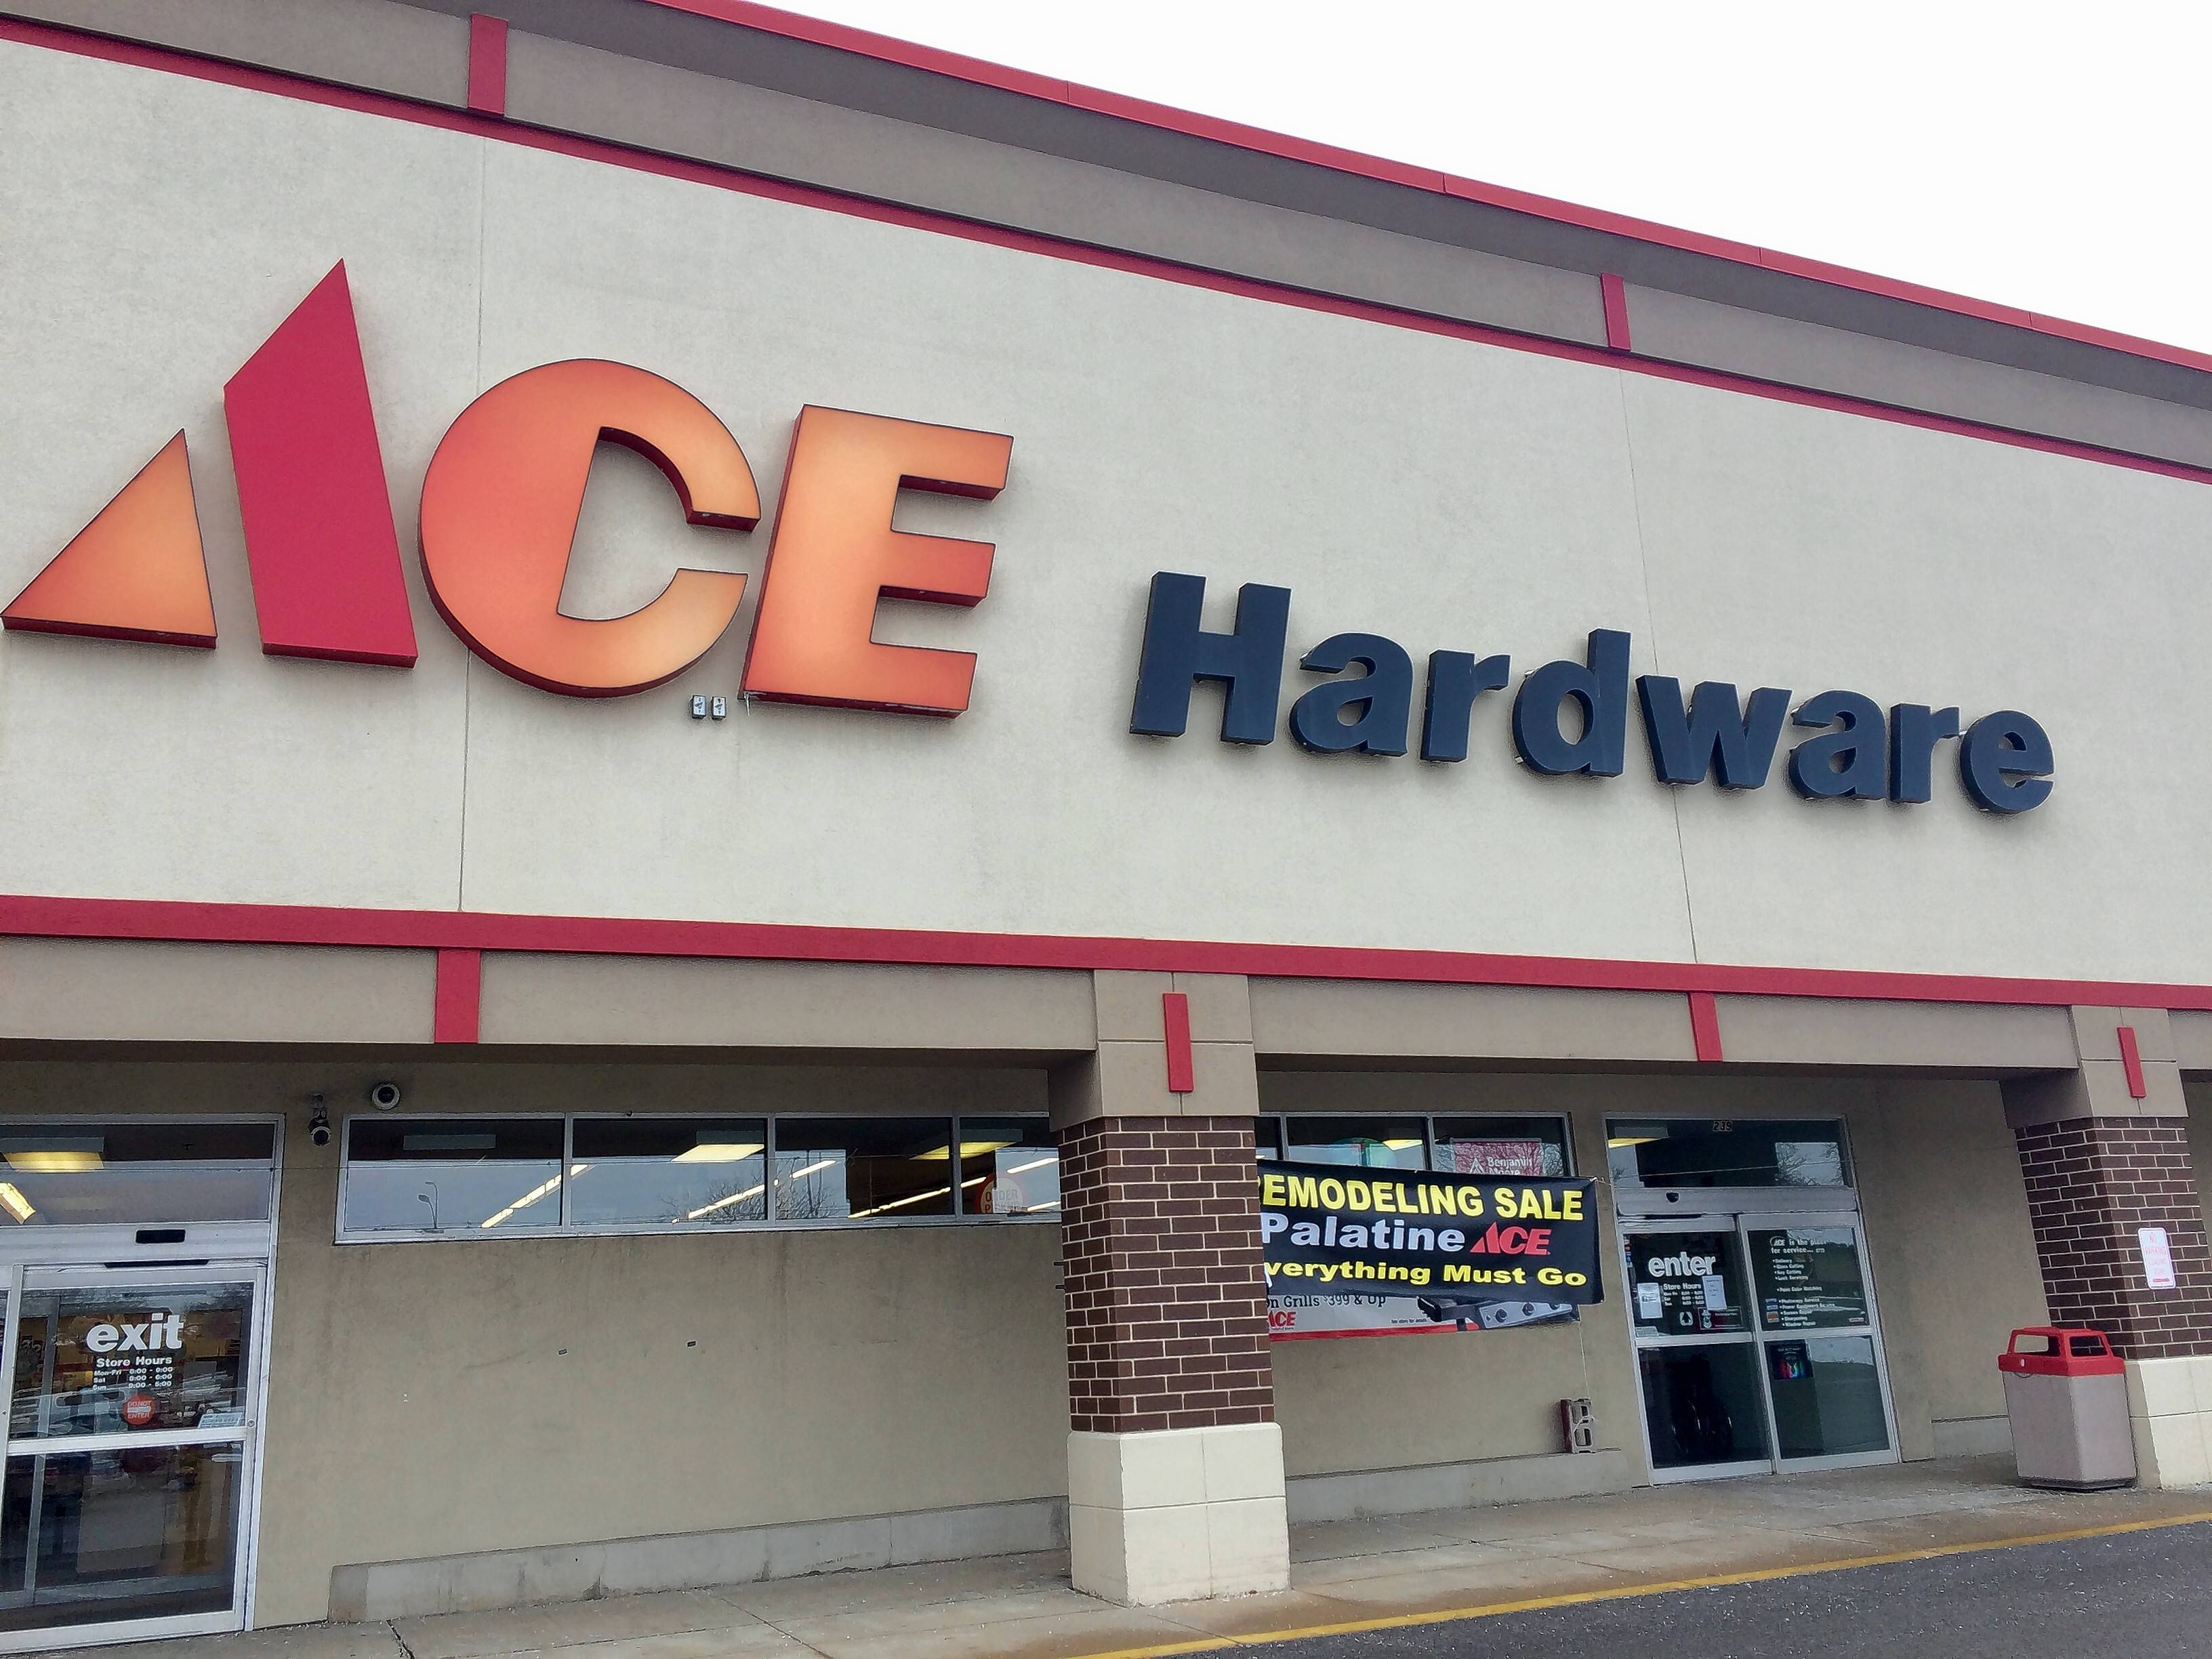 Another Ace Hardware plans to operate in this space at Palatine Plaza. The current Ace is going out of business and is liquidating its inventory. Officials from Highland Park-based Mutual Ace Hardware say they are acquiring the store and hope to have it fully stocked to reopen in early April.